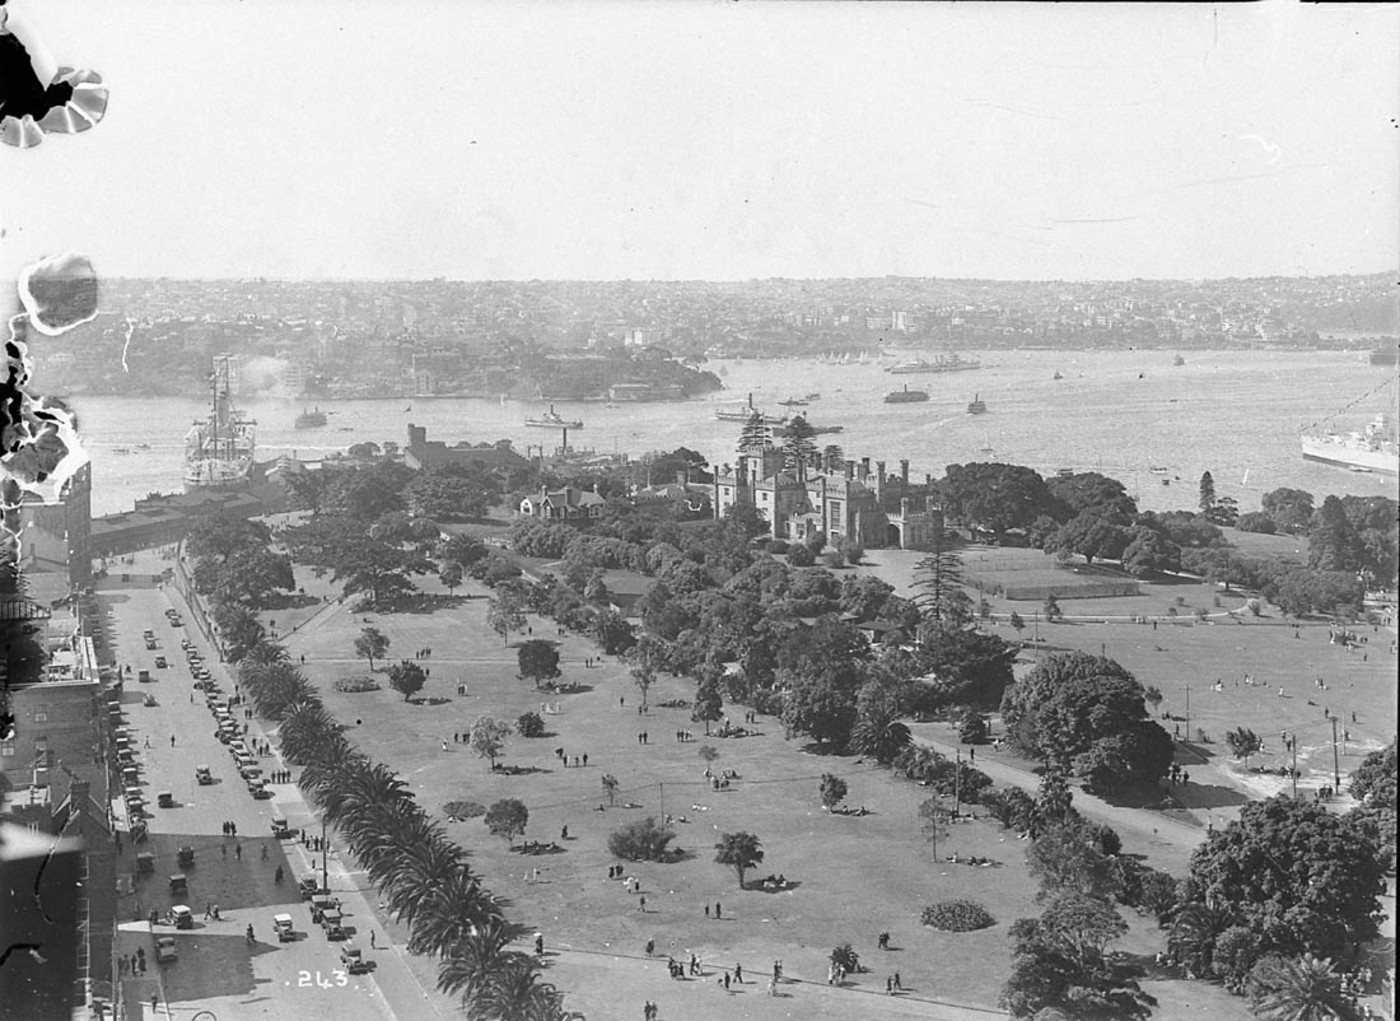 Sydney Harbour, 19 March 1932, by Hall & Co.